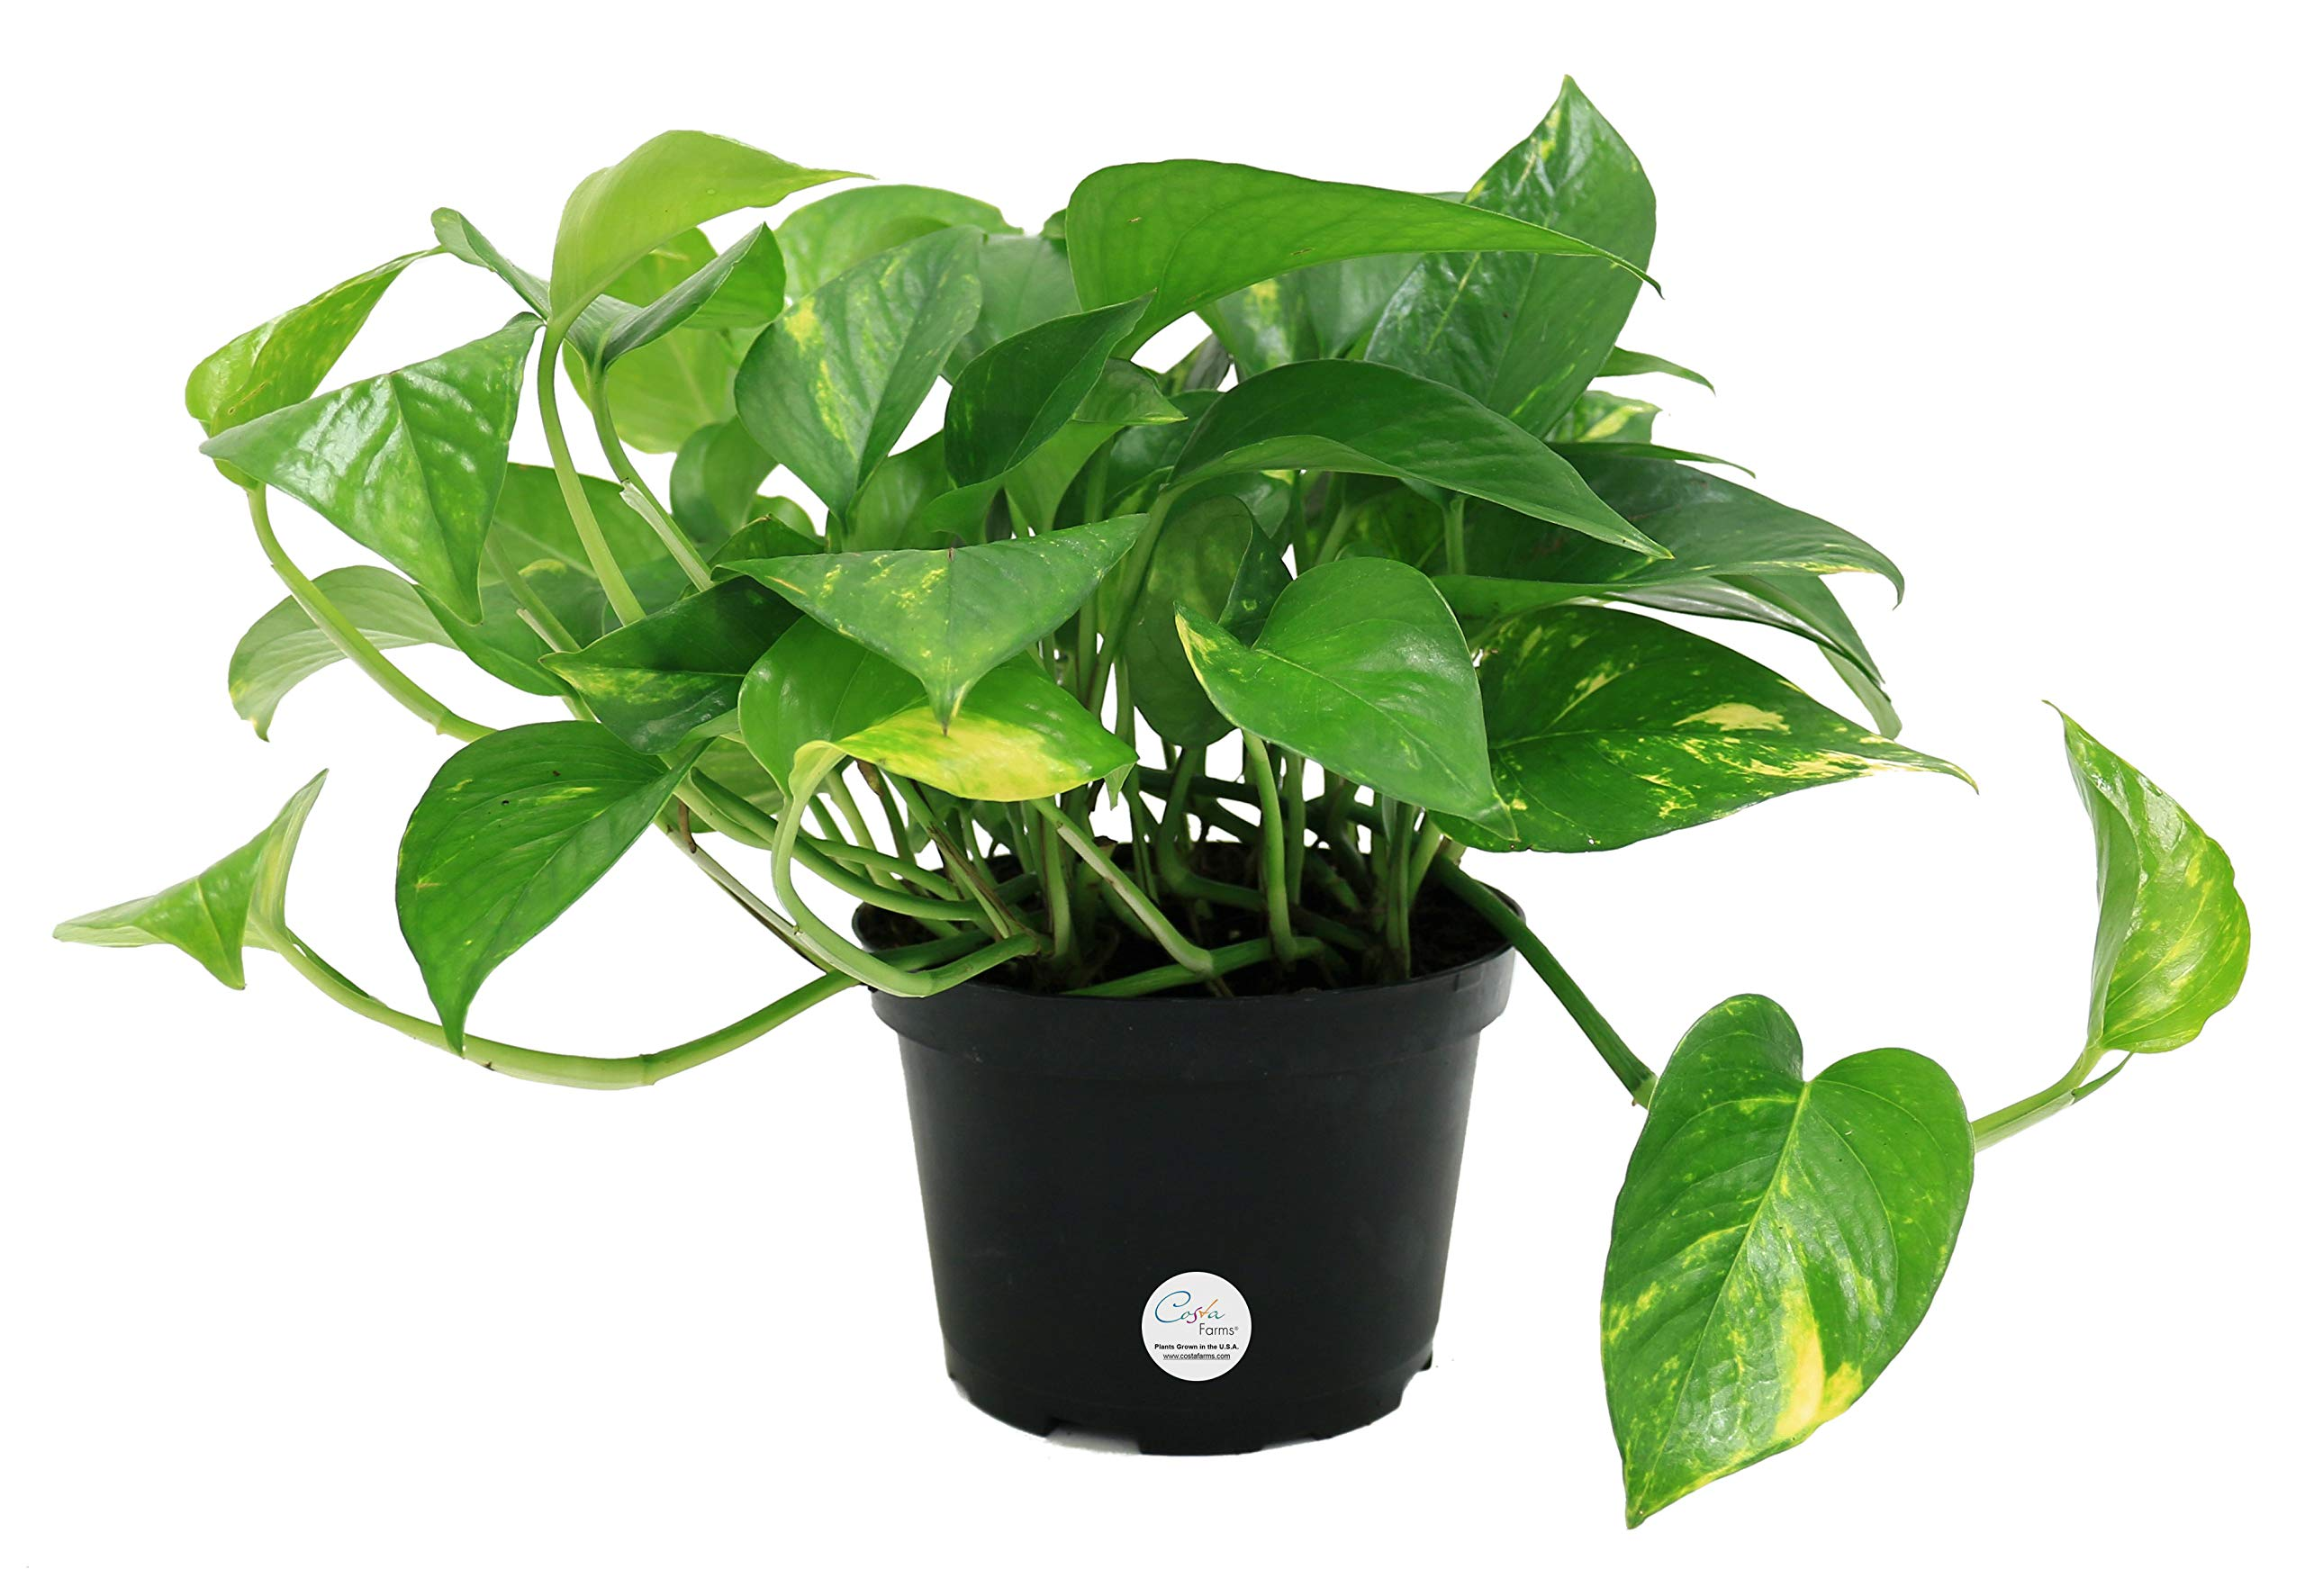 Costa Farms Golden Pothos Devil's Ivy Live Indoor Plant, 6-Inch, Ships in Grower's Pot